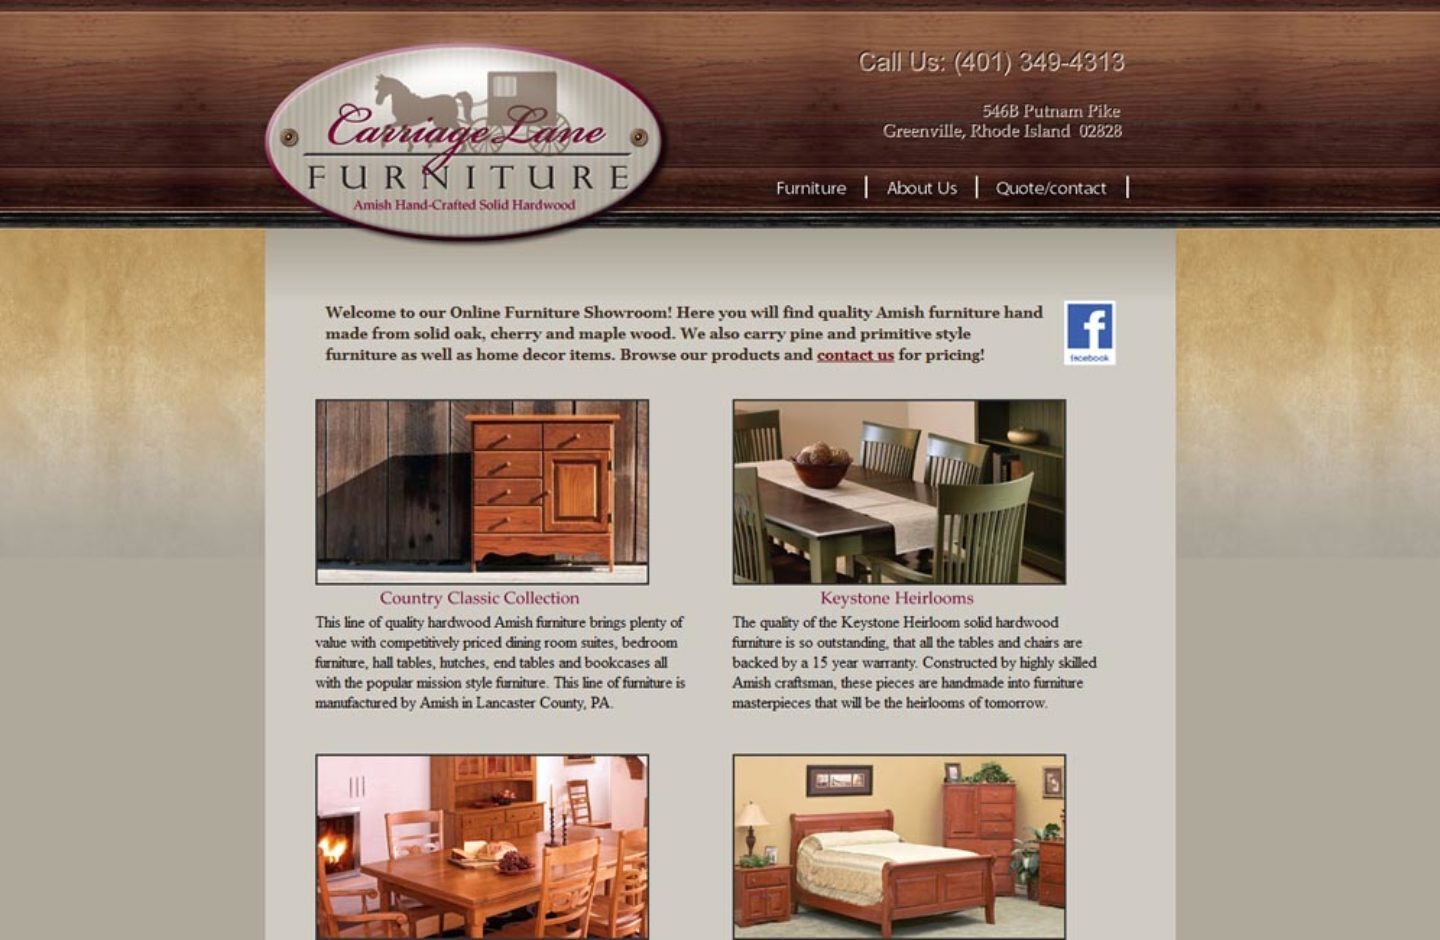 Carriage Lane Furniture